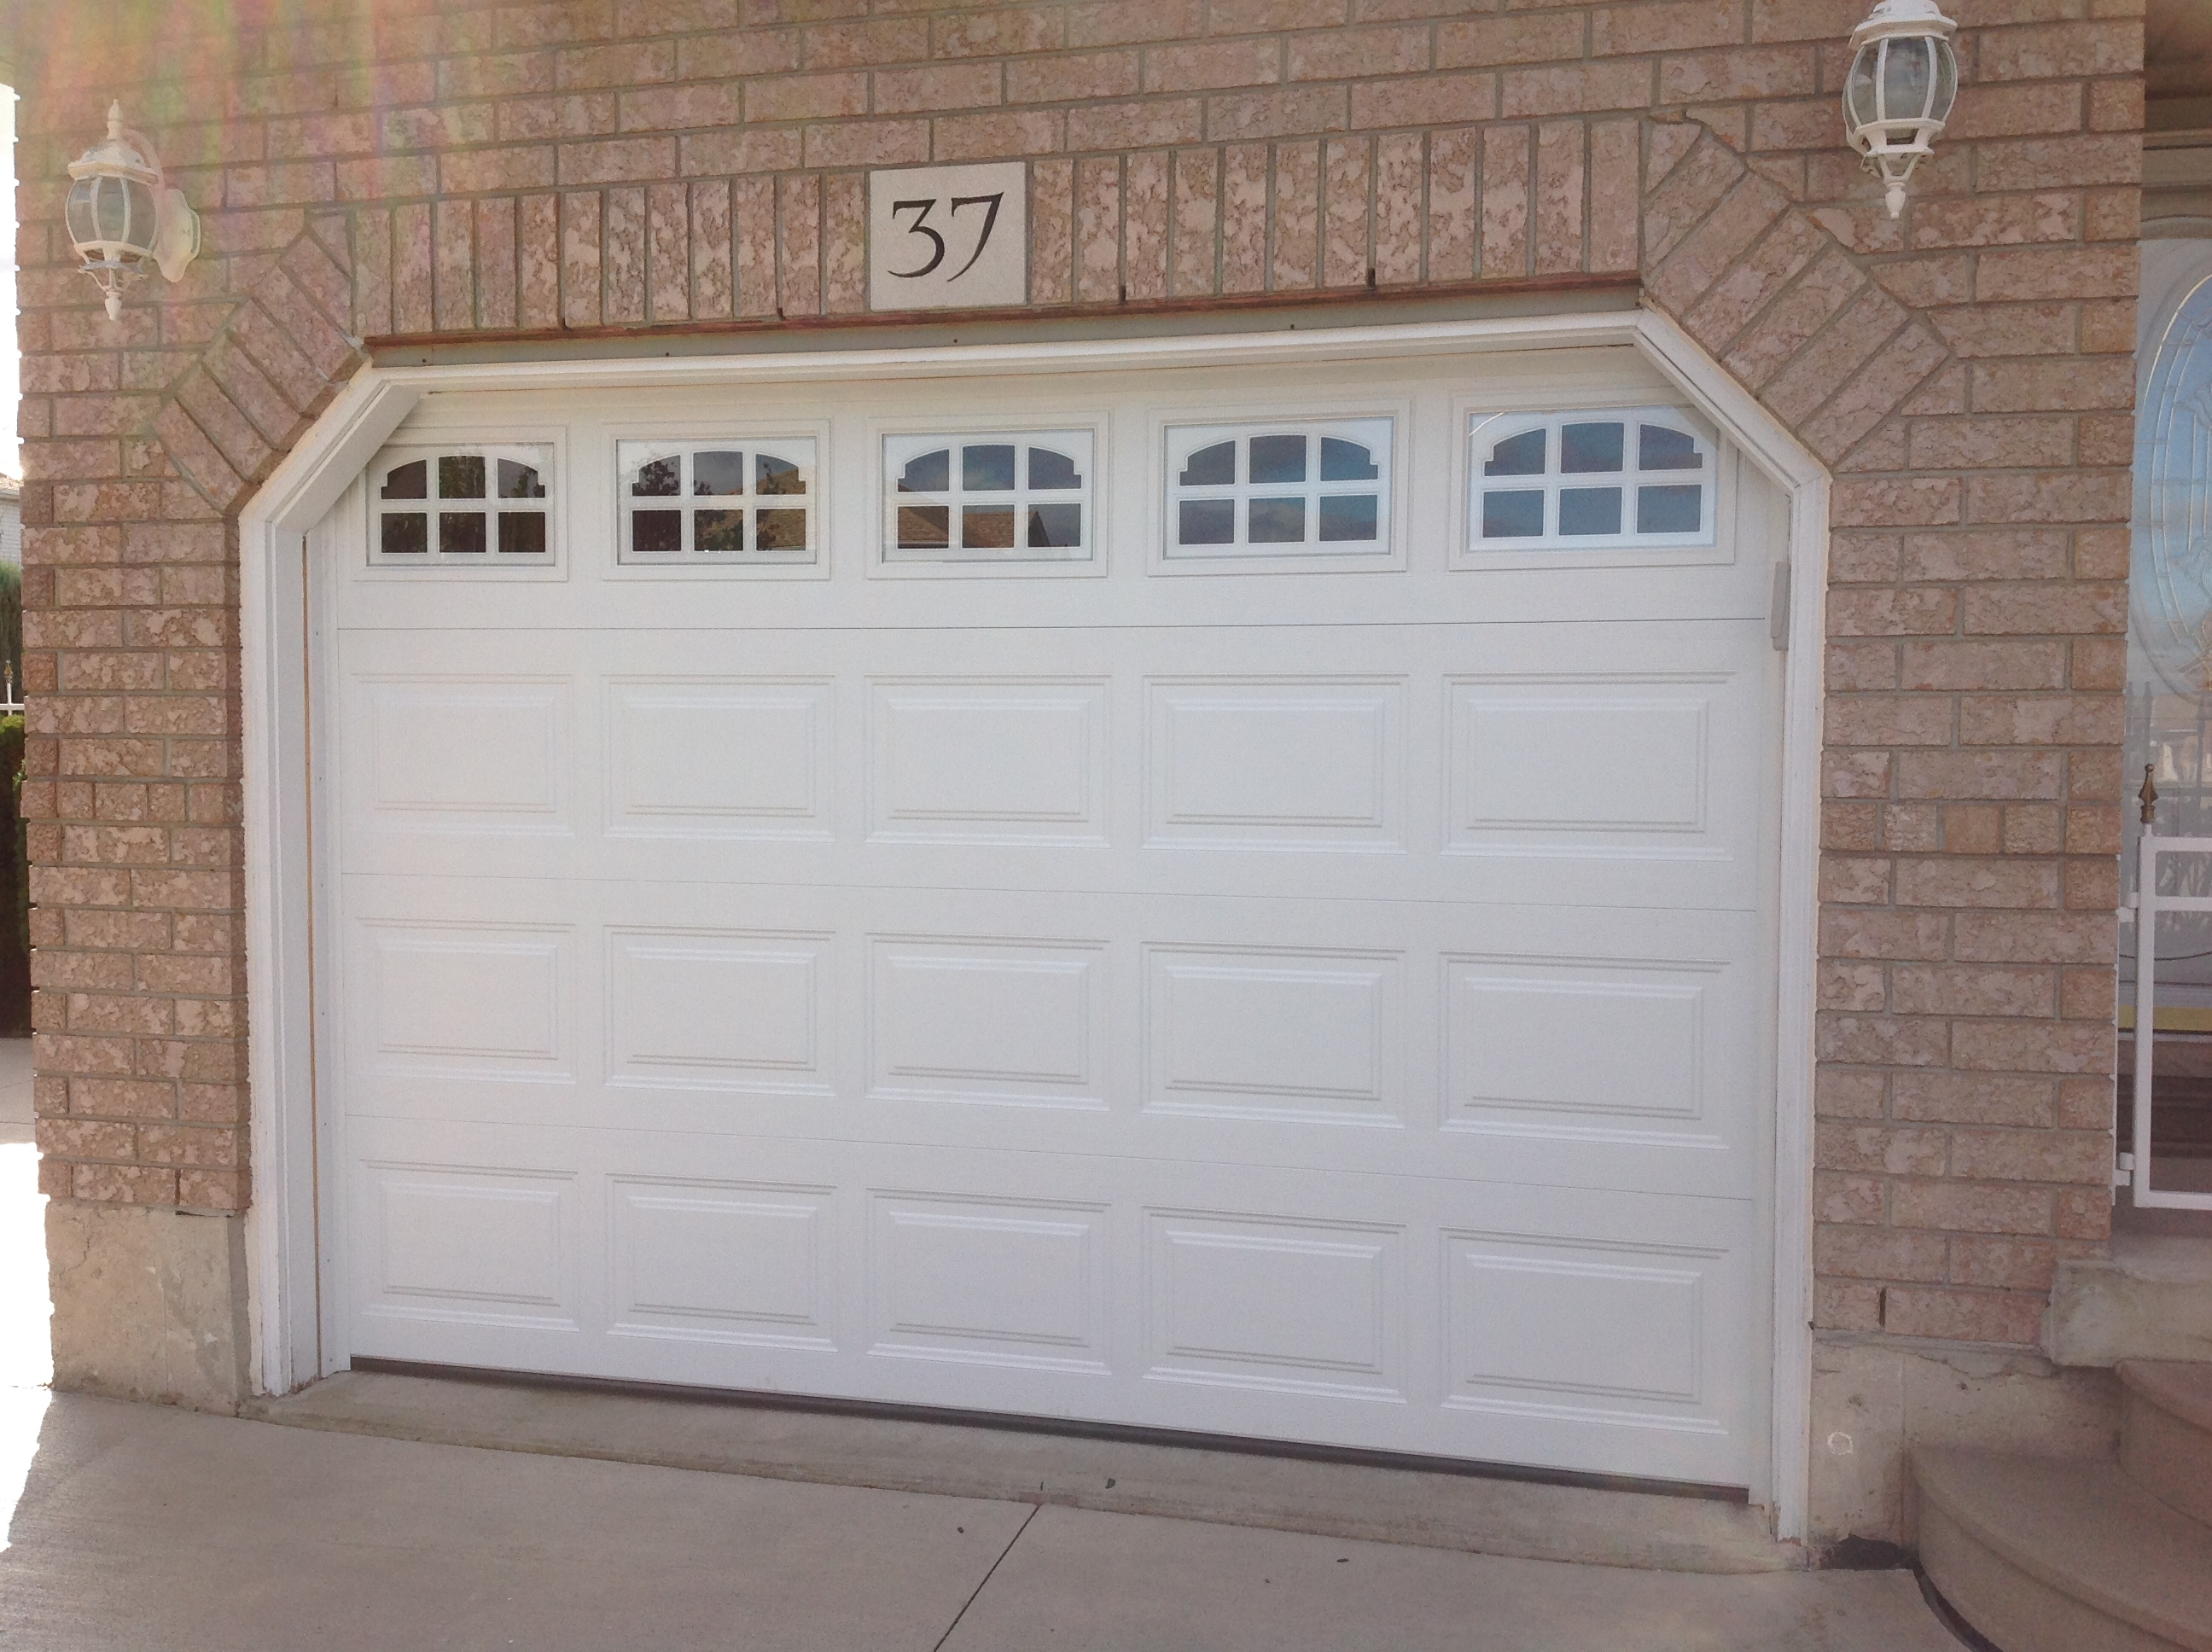 stain diego garage san suppliers design p wood repair grade door ca installed custom image in collections sectional ideas doors